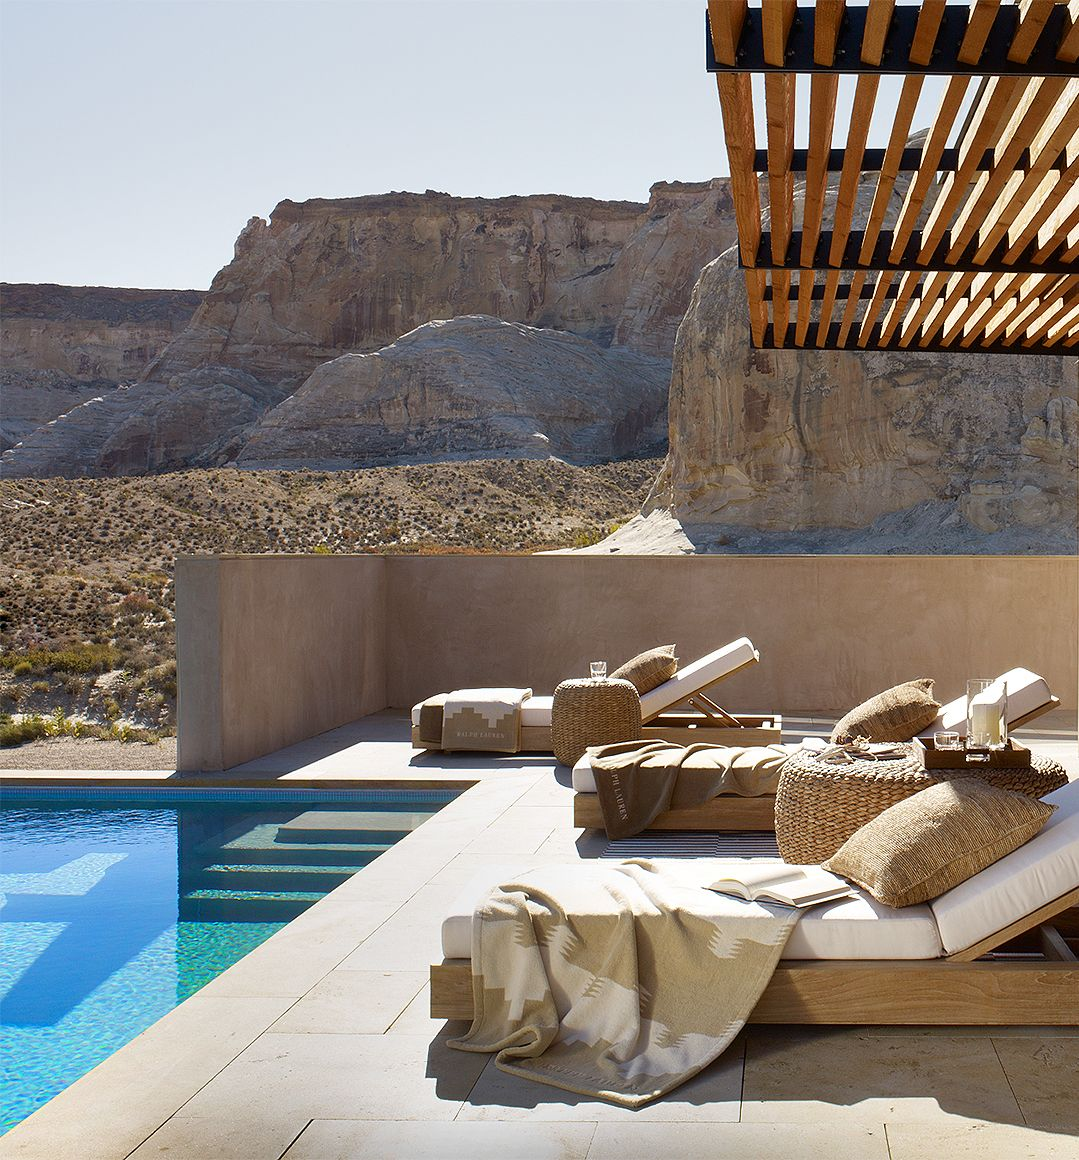 Ralph Lauren Home redefines a desert oasis as luxe poolside lounging ...